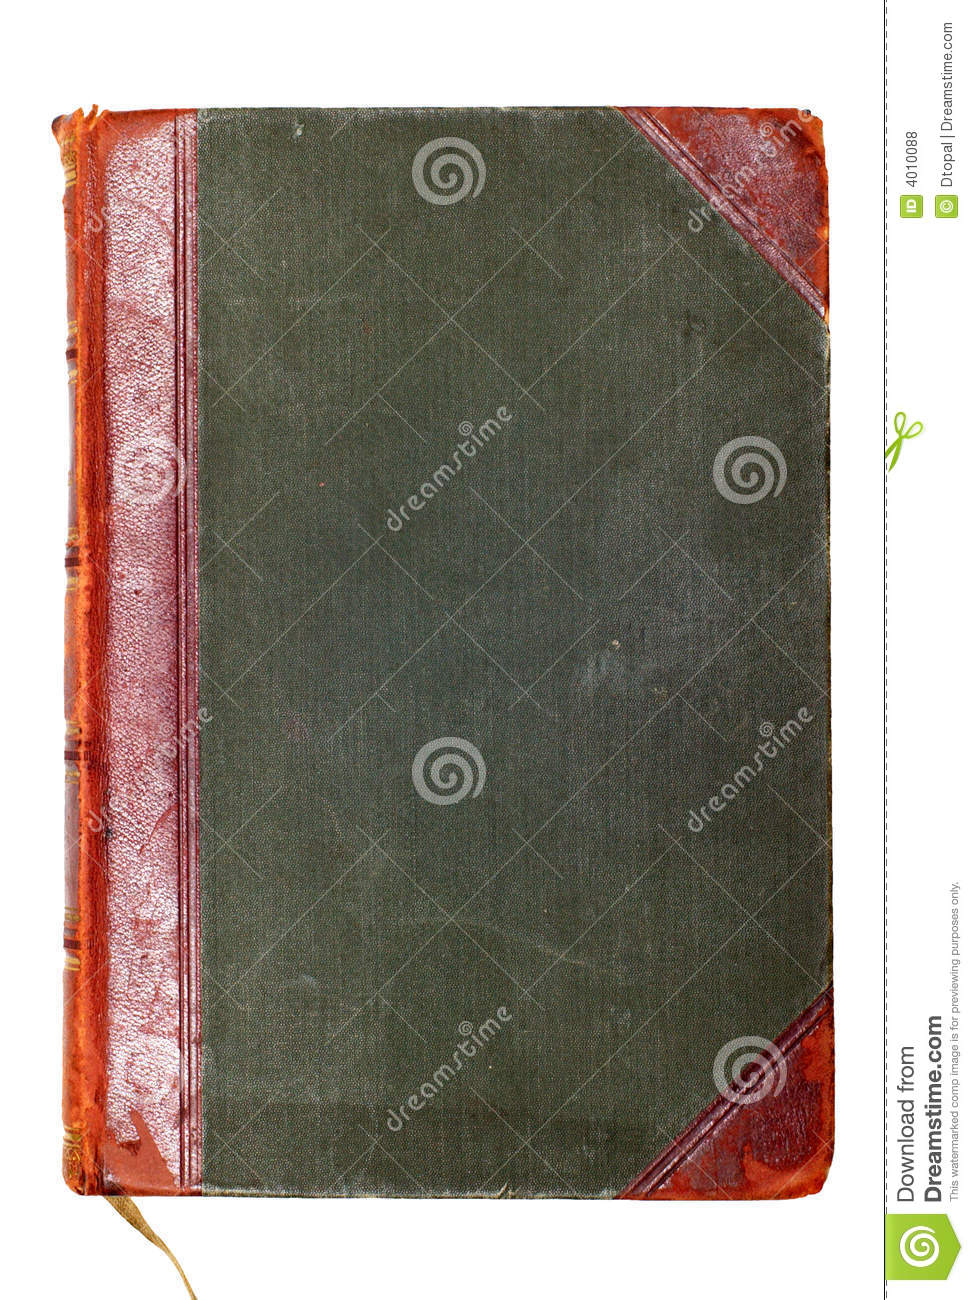 Cookbook With Green Cover : Old green book cover royalty free stock photos image